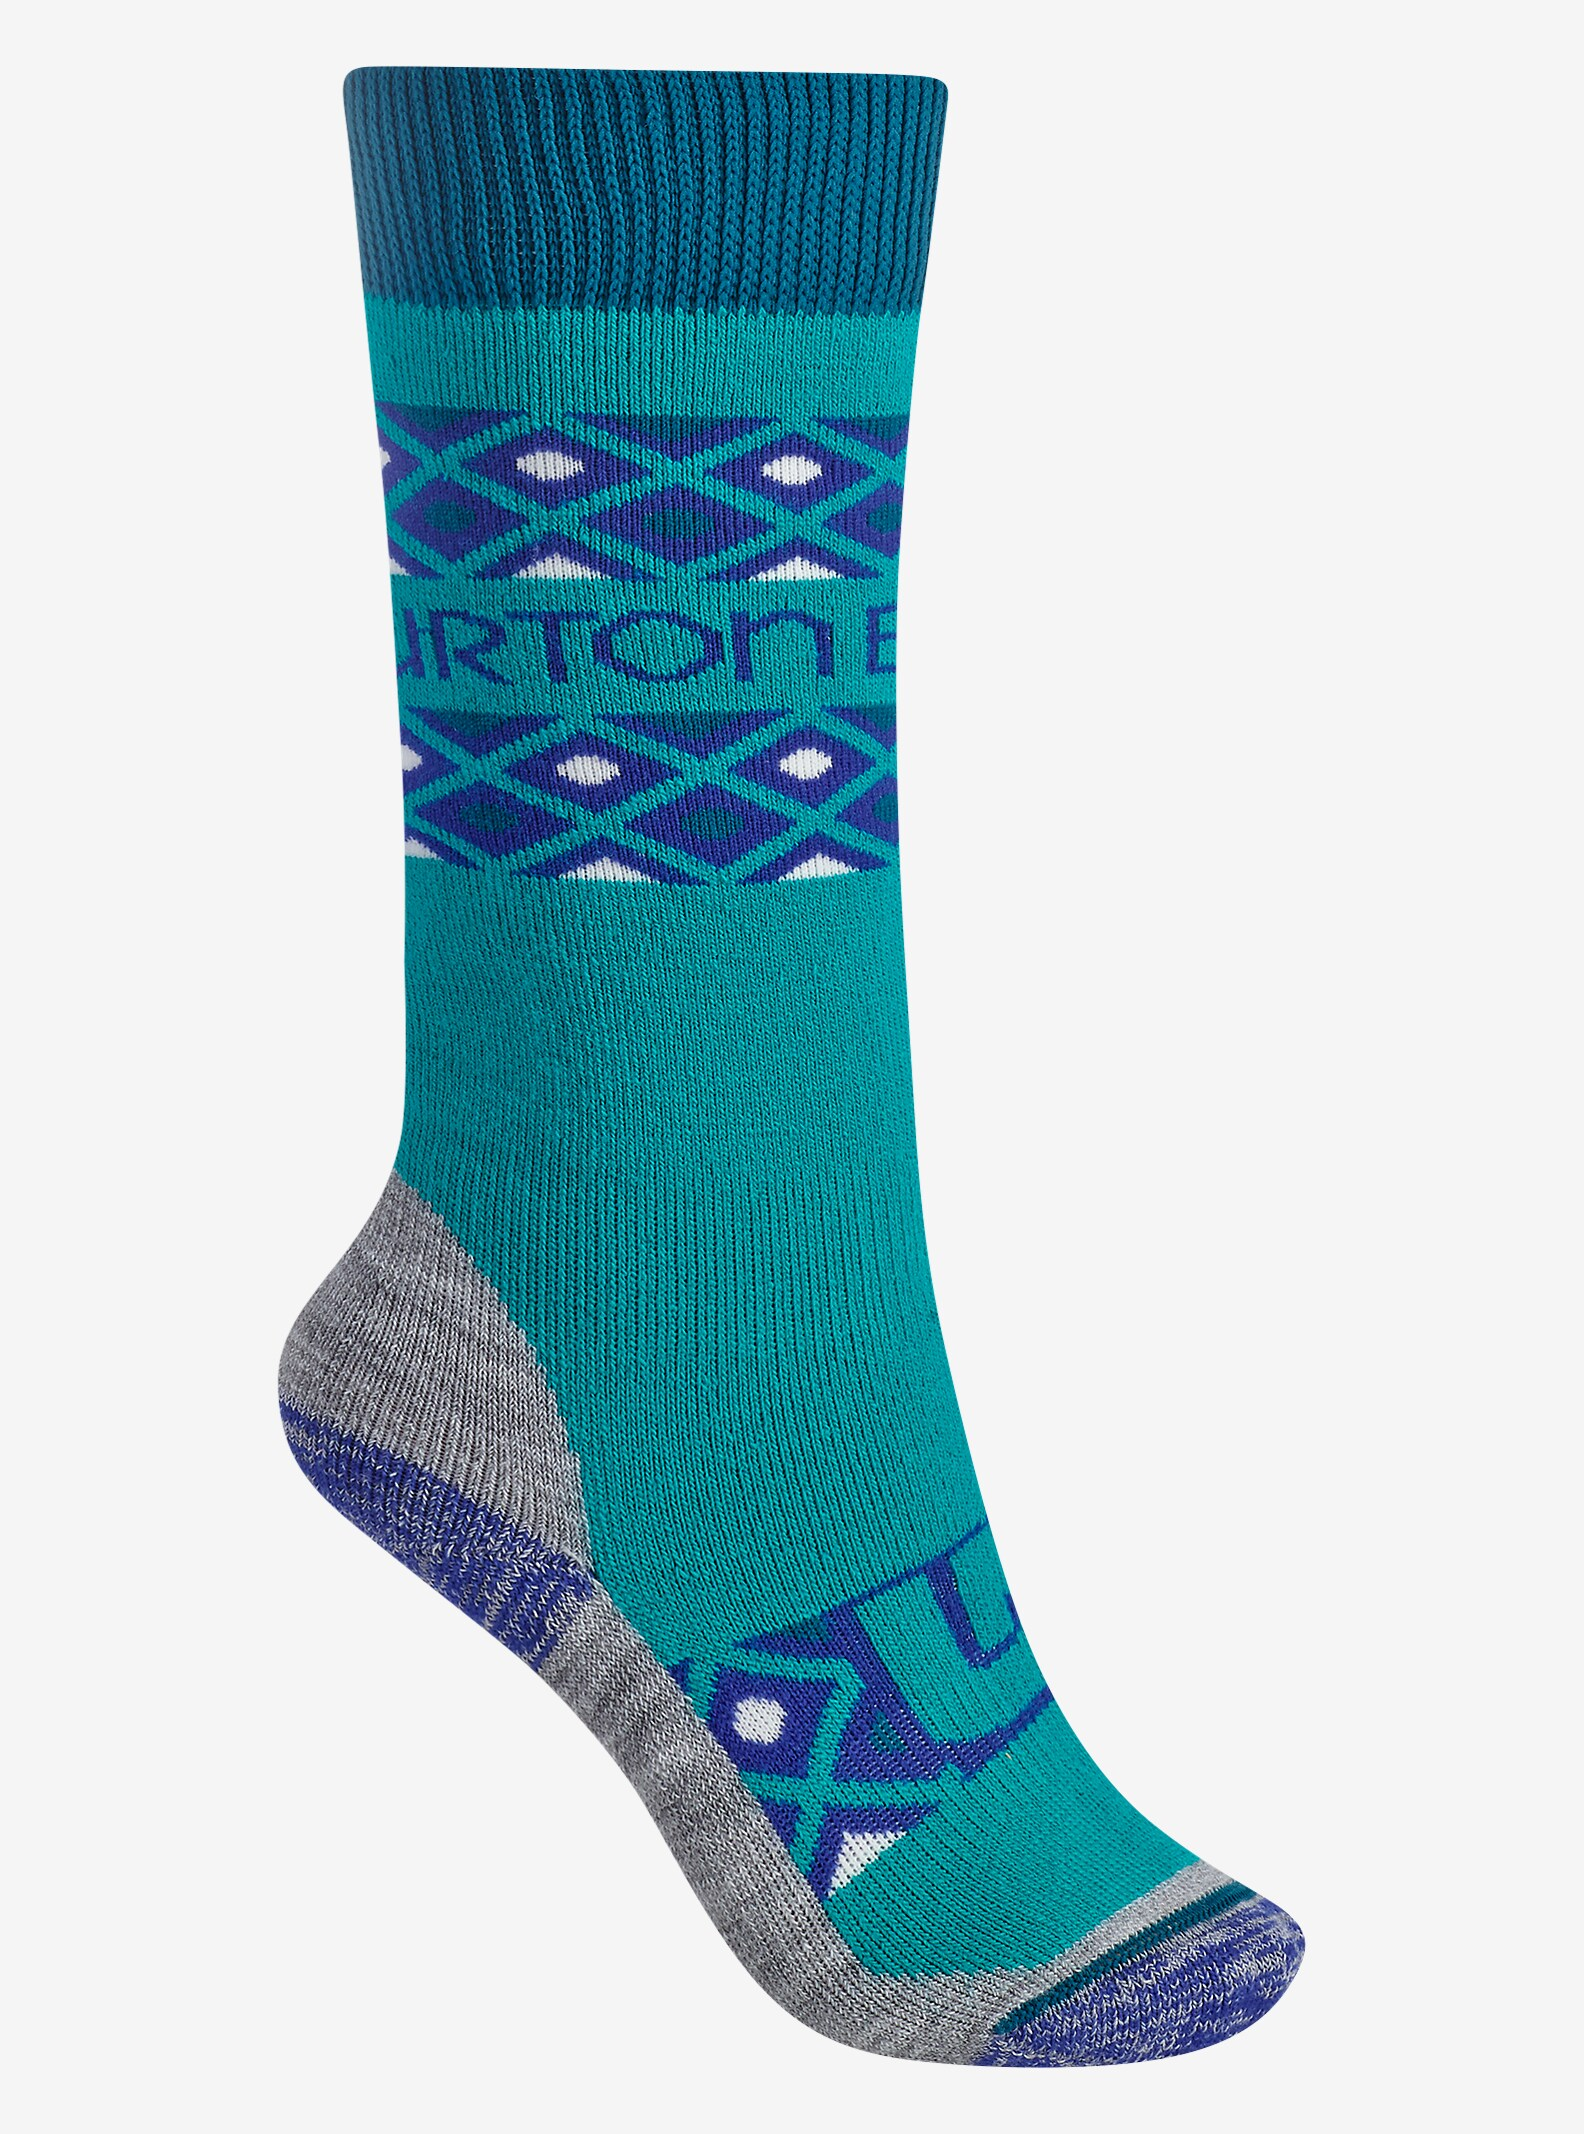 Burton Girls' Scout Sock shown in Everglade